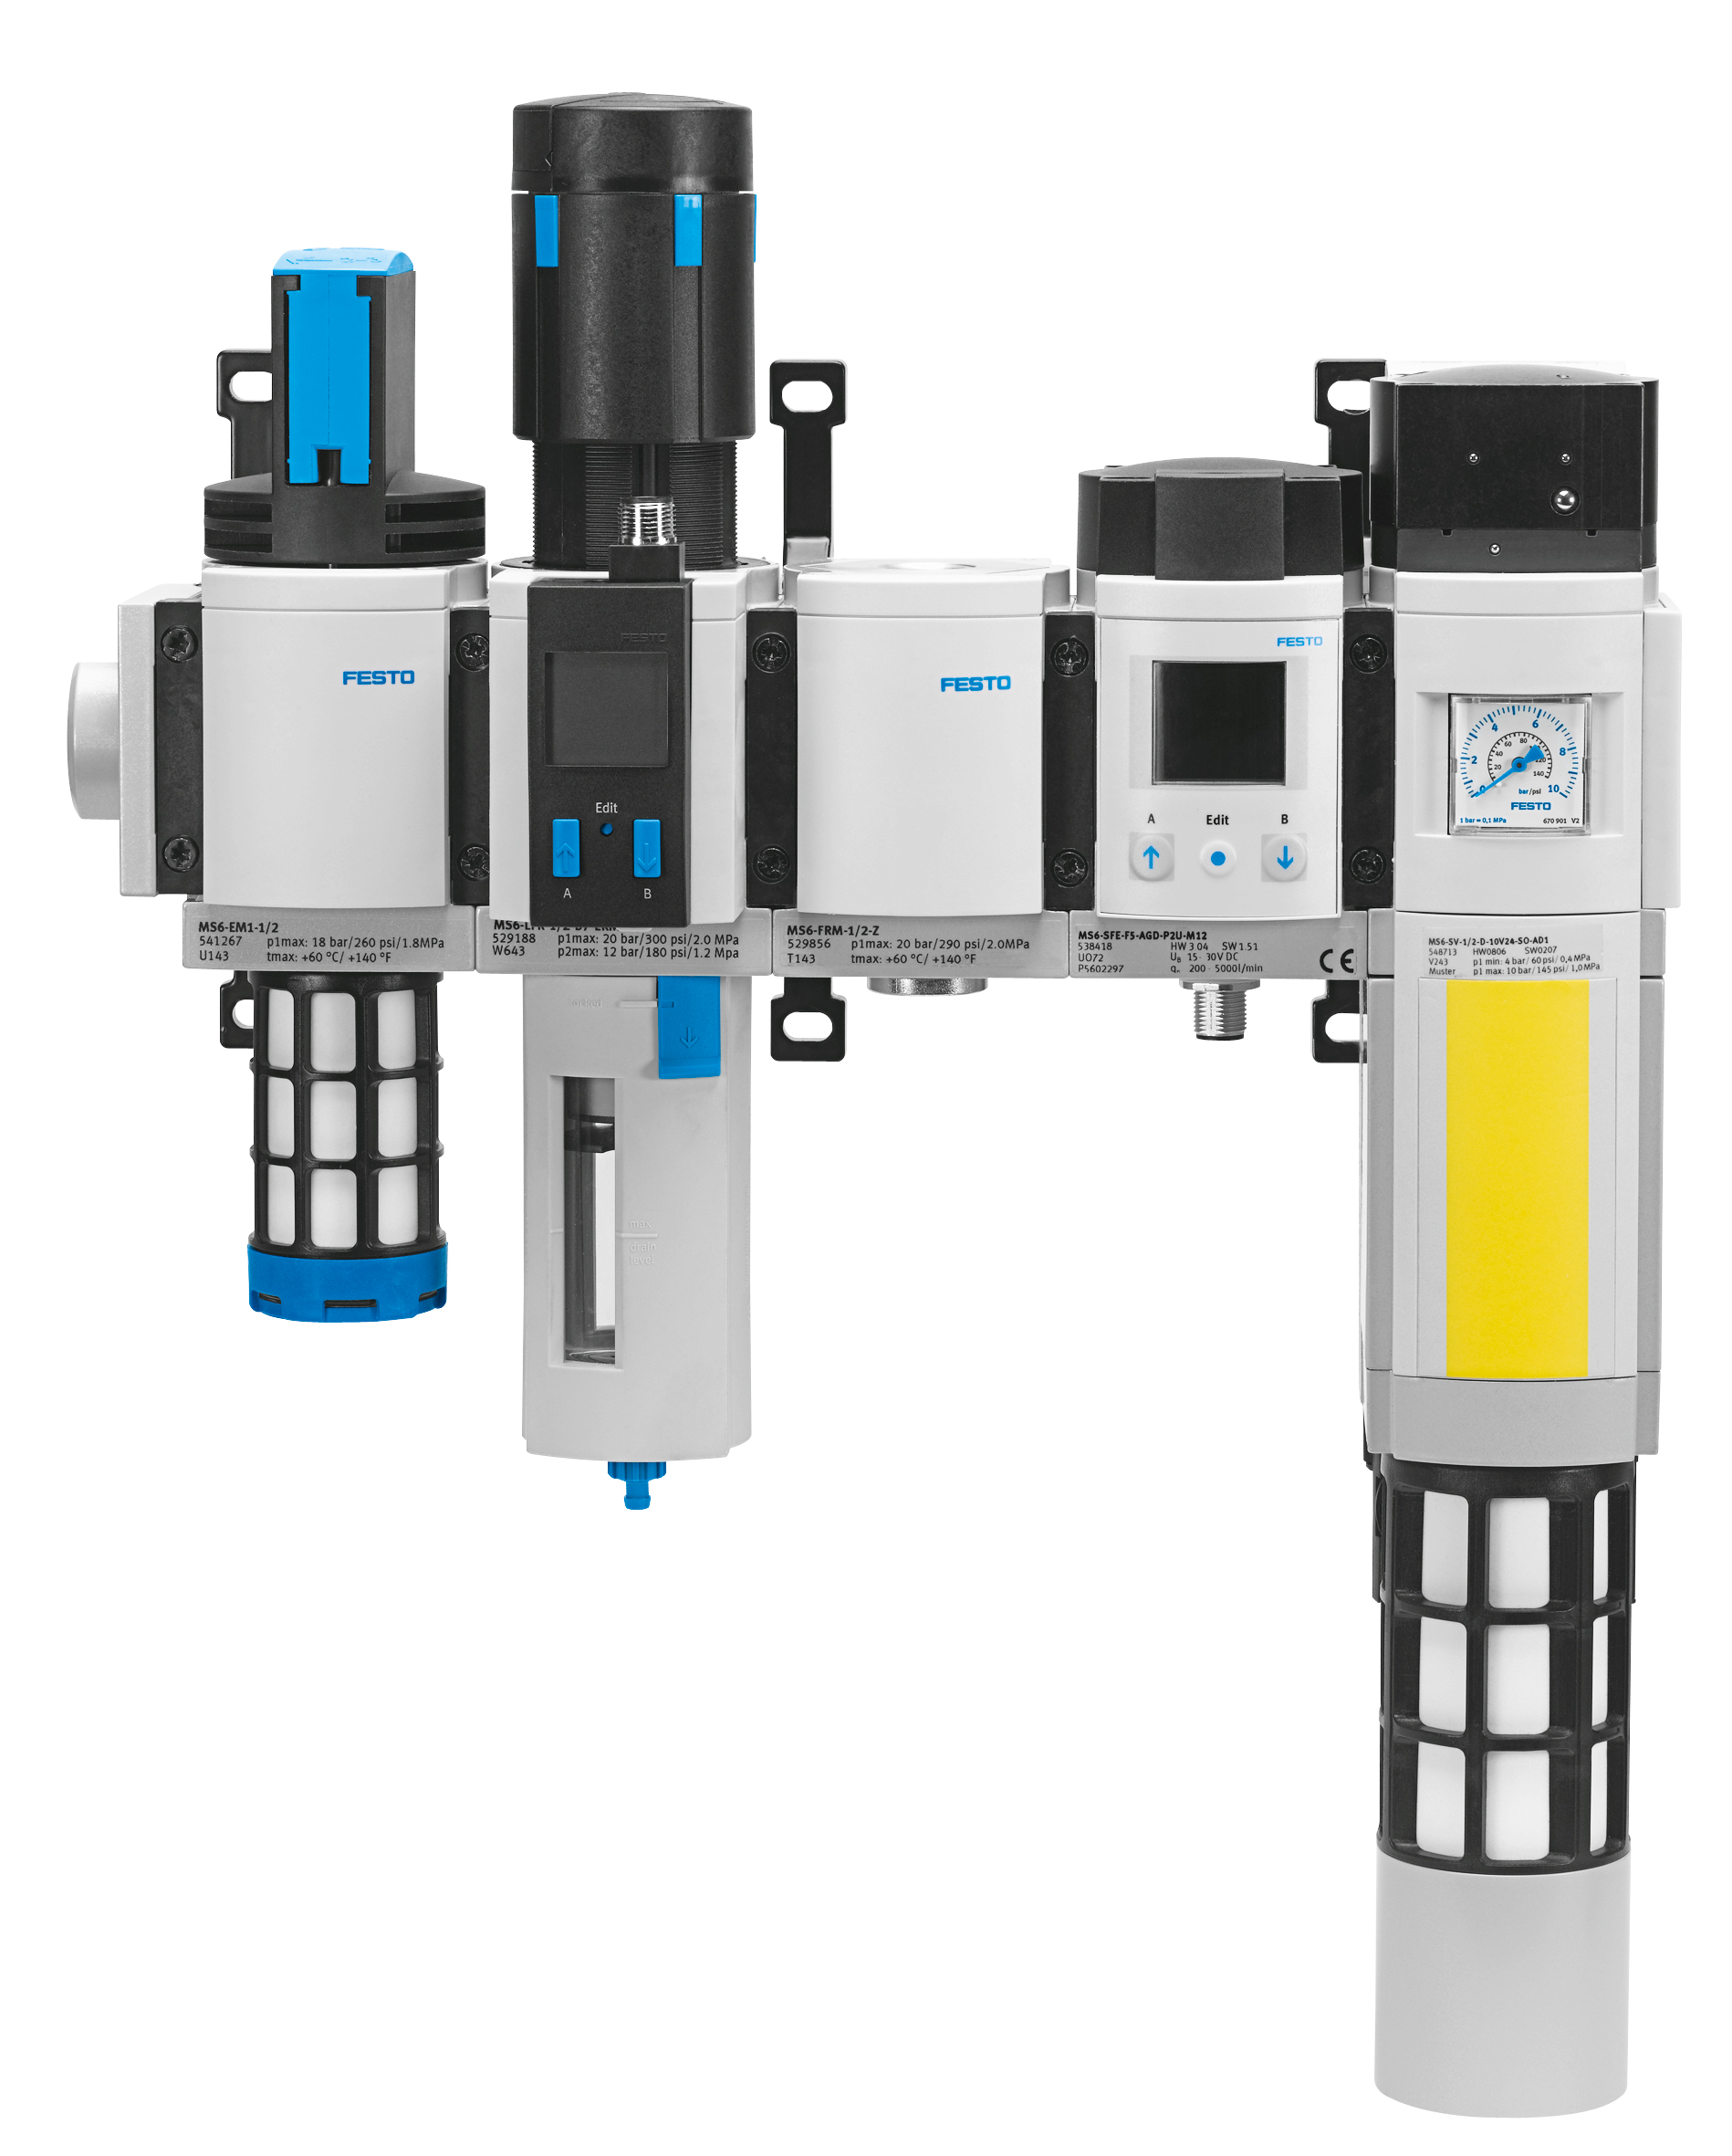 Festo Introduces An Innovative Series Of Pneumatic Safety